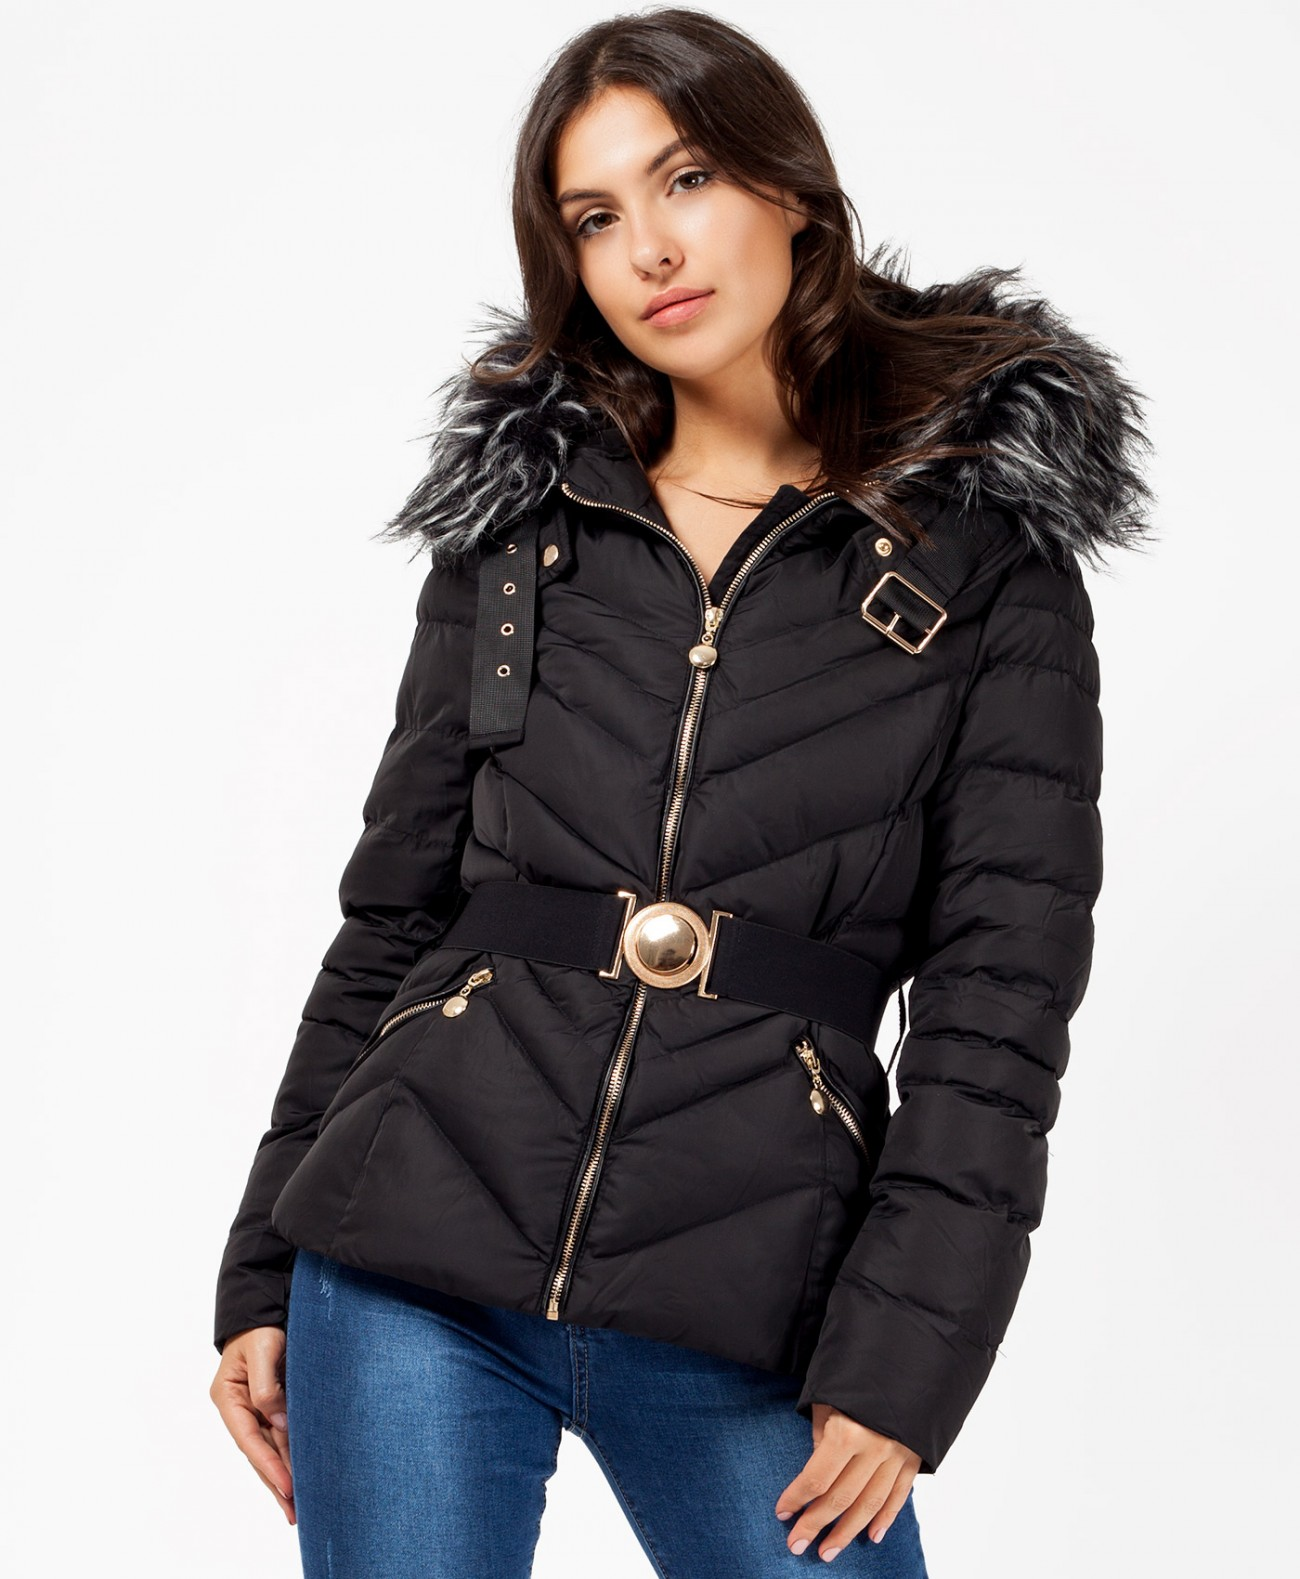 5dc16f7b968 Home  Black Faux Fur Hood Belted Quilted Puffer Jacket. Black-Quilted -Chevron-Belted-Bubble-Jacket-1a